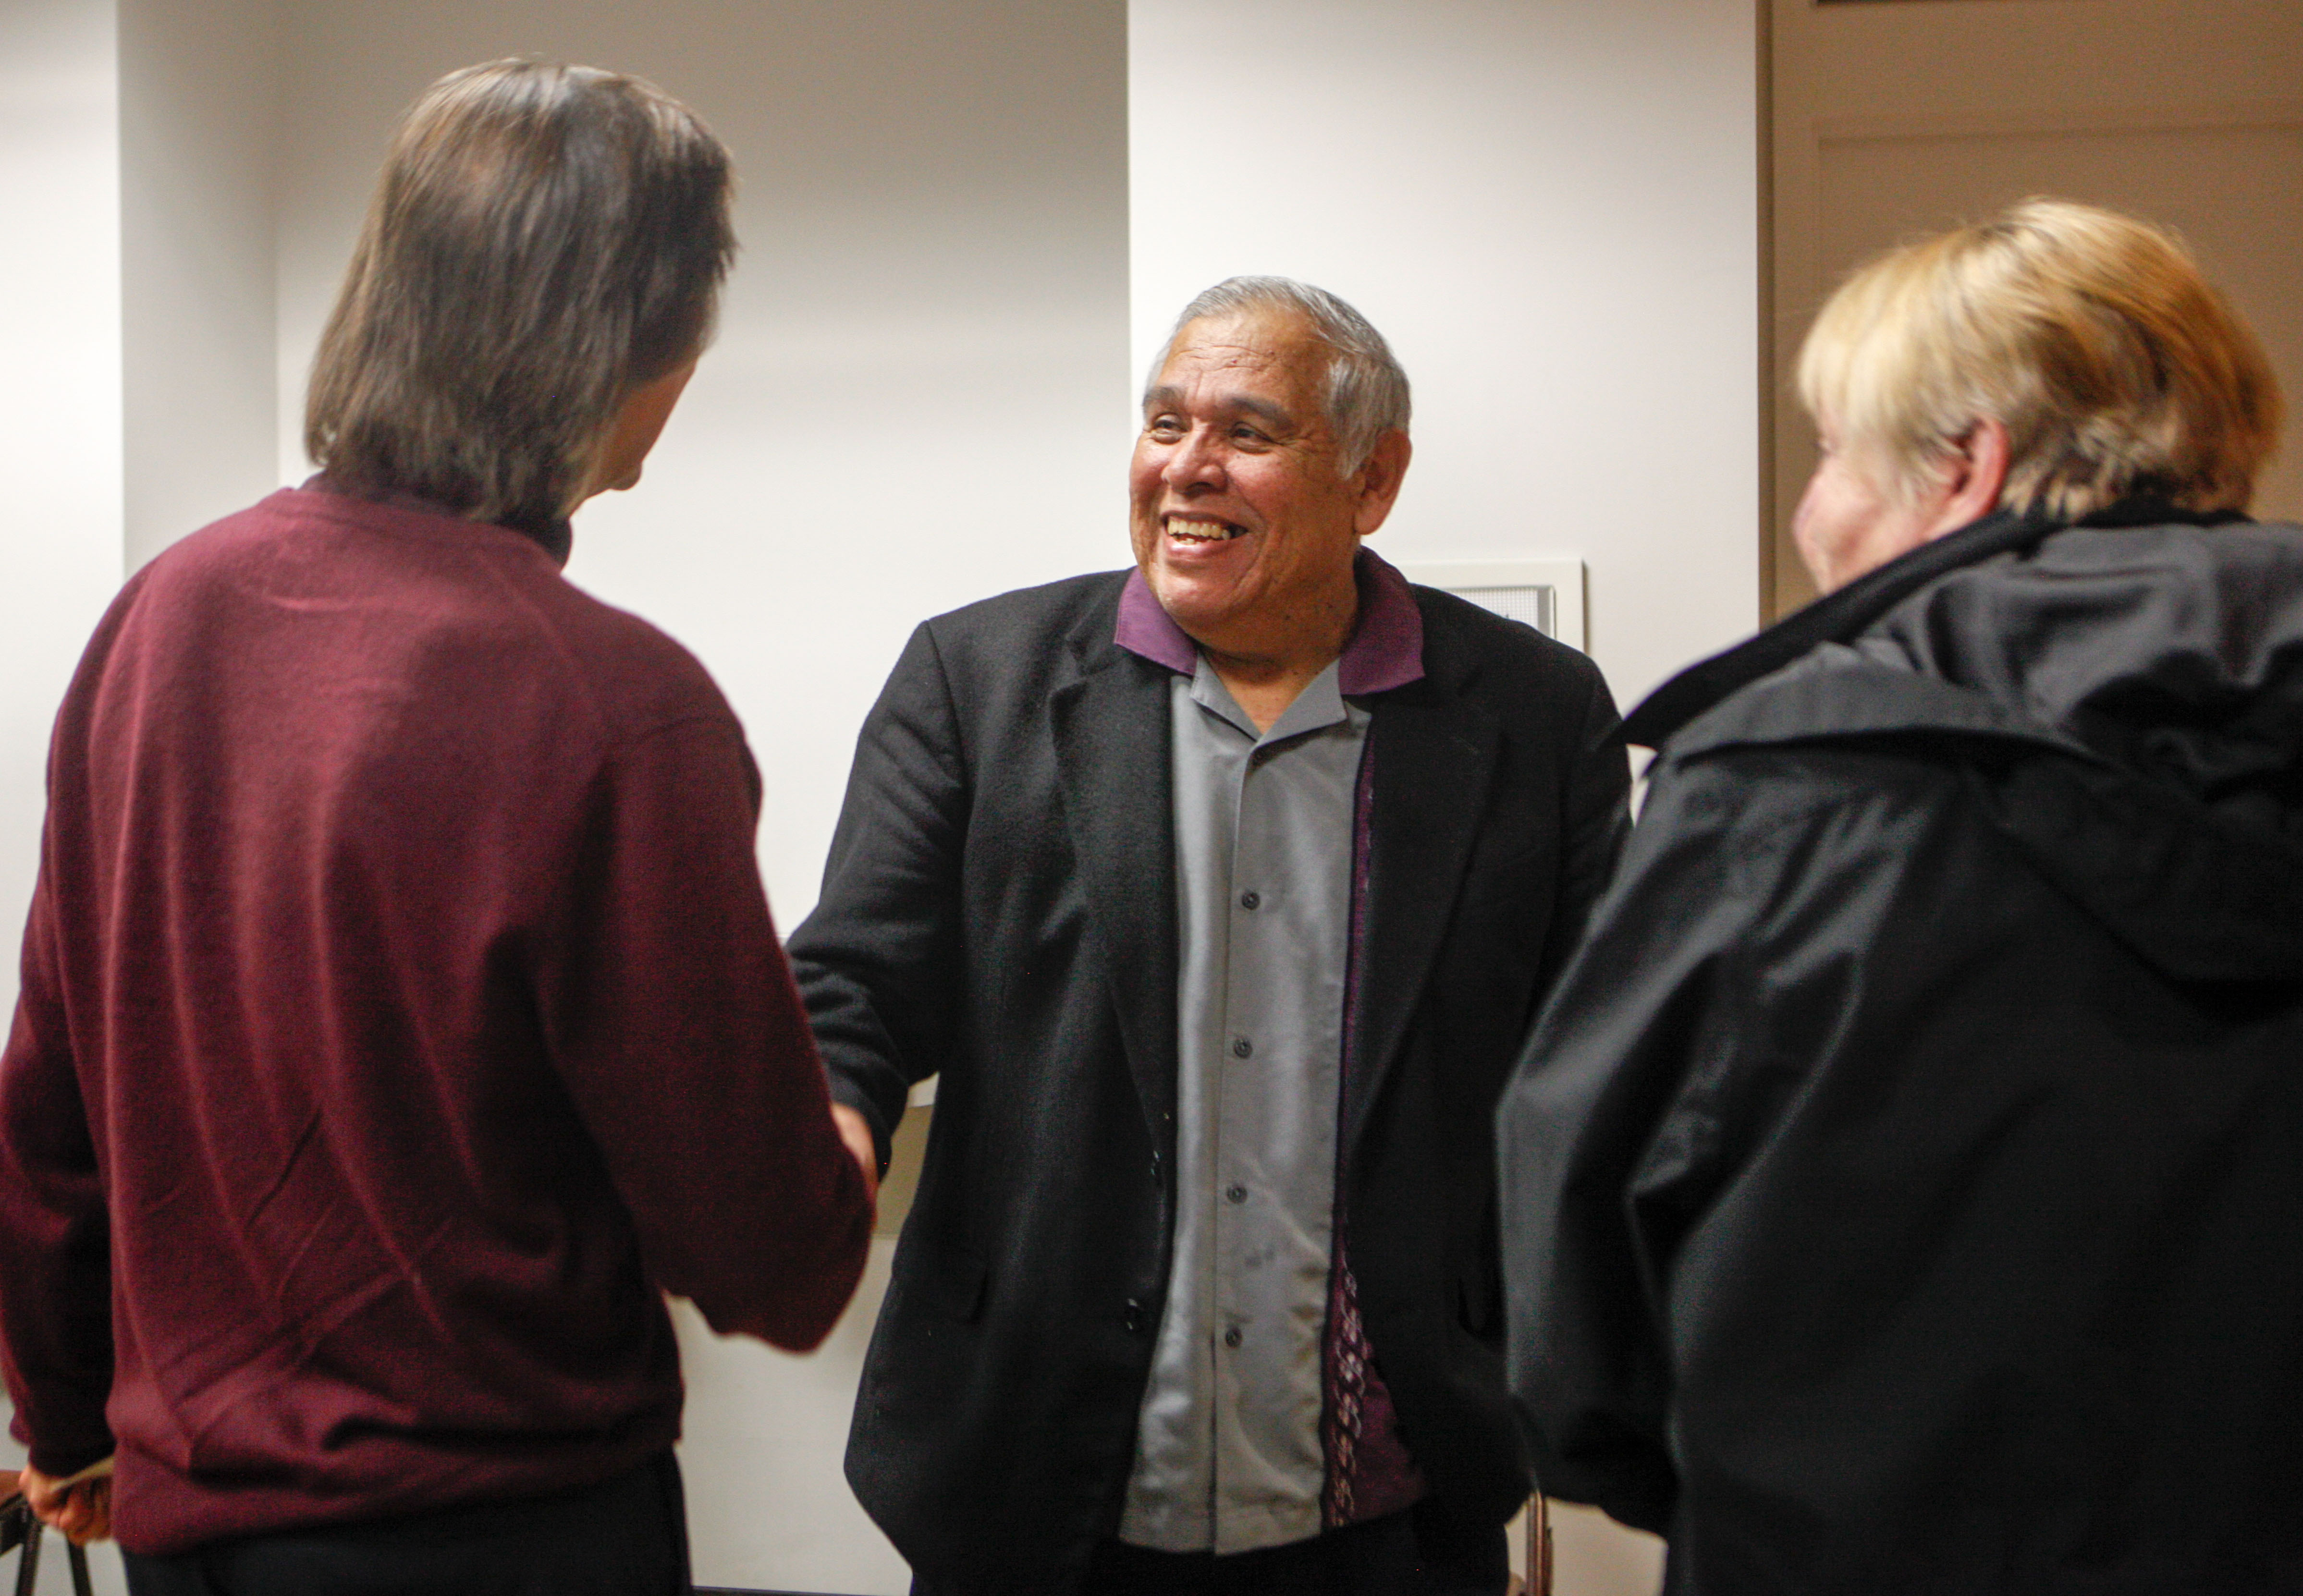 Journalism department chair and The Guardsman advisor, Juan Gonzales, greets guests, left, ESL instructor Victor Turks and retired CCSF librarian Julia Bergman, right, at the 80th Anniversary celebration of the colleges newspaper on November 12, 2015 at the Louise & Claude Rosenberg, Jr. Library. (Photo by Franchon Smith/The Guardsman)